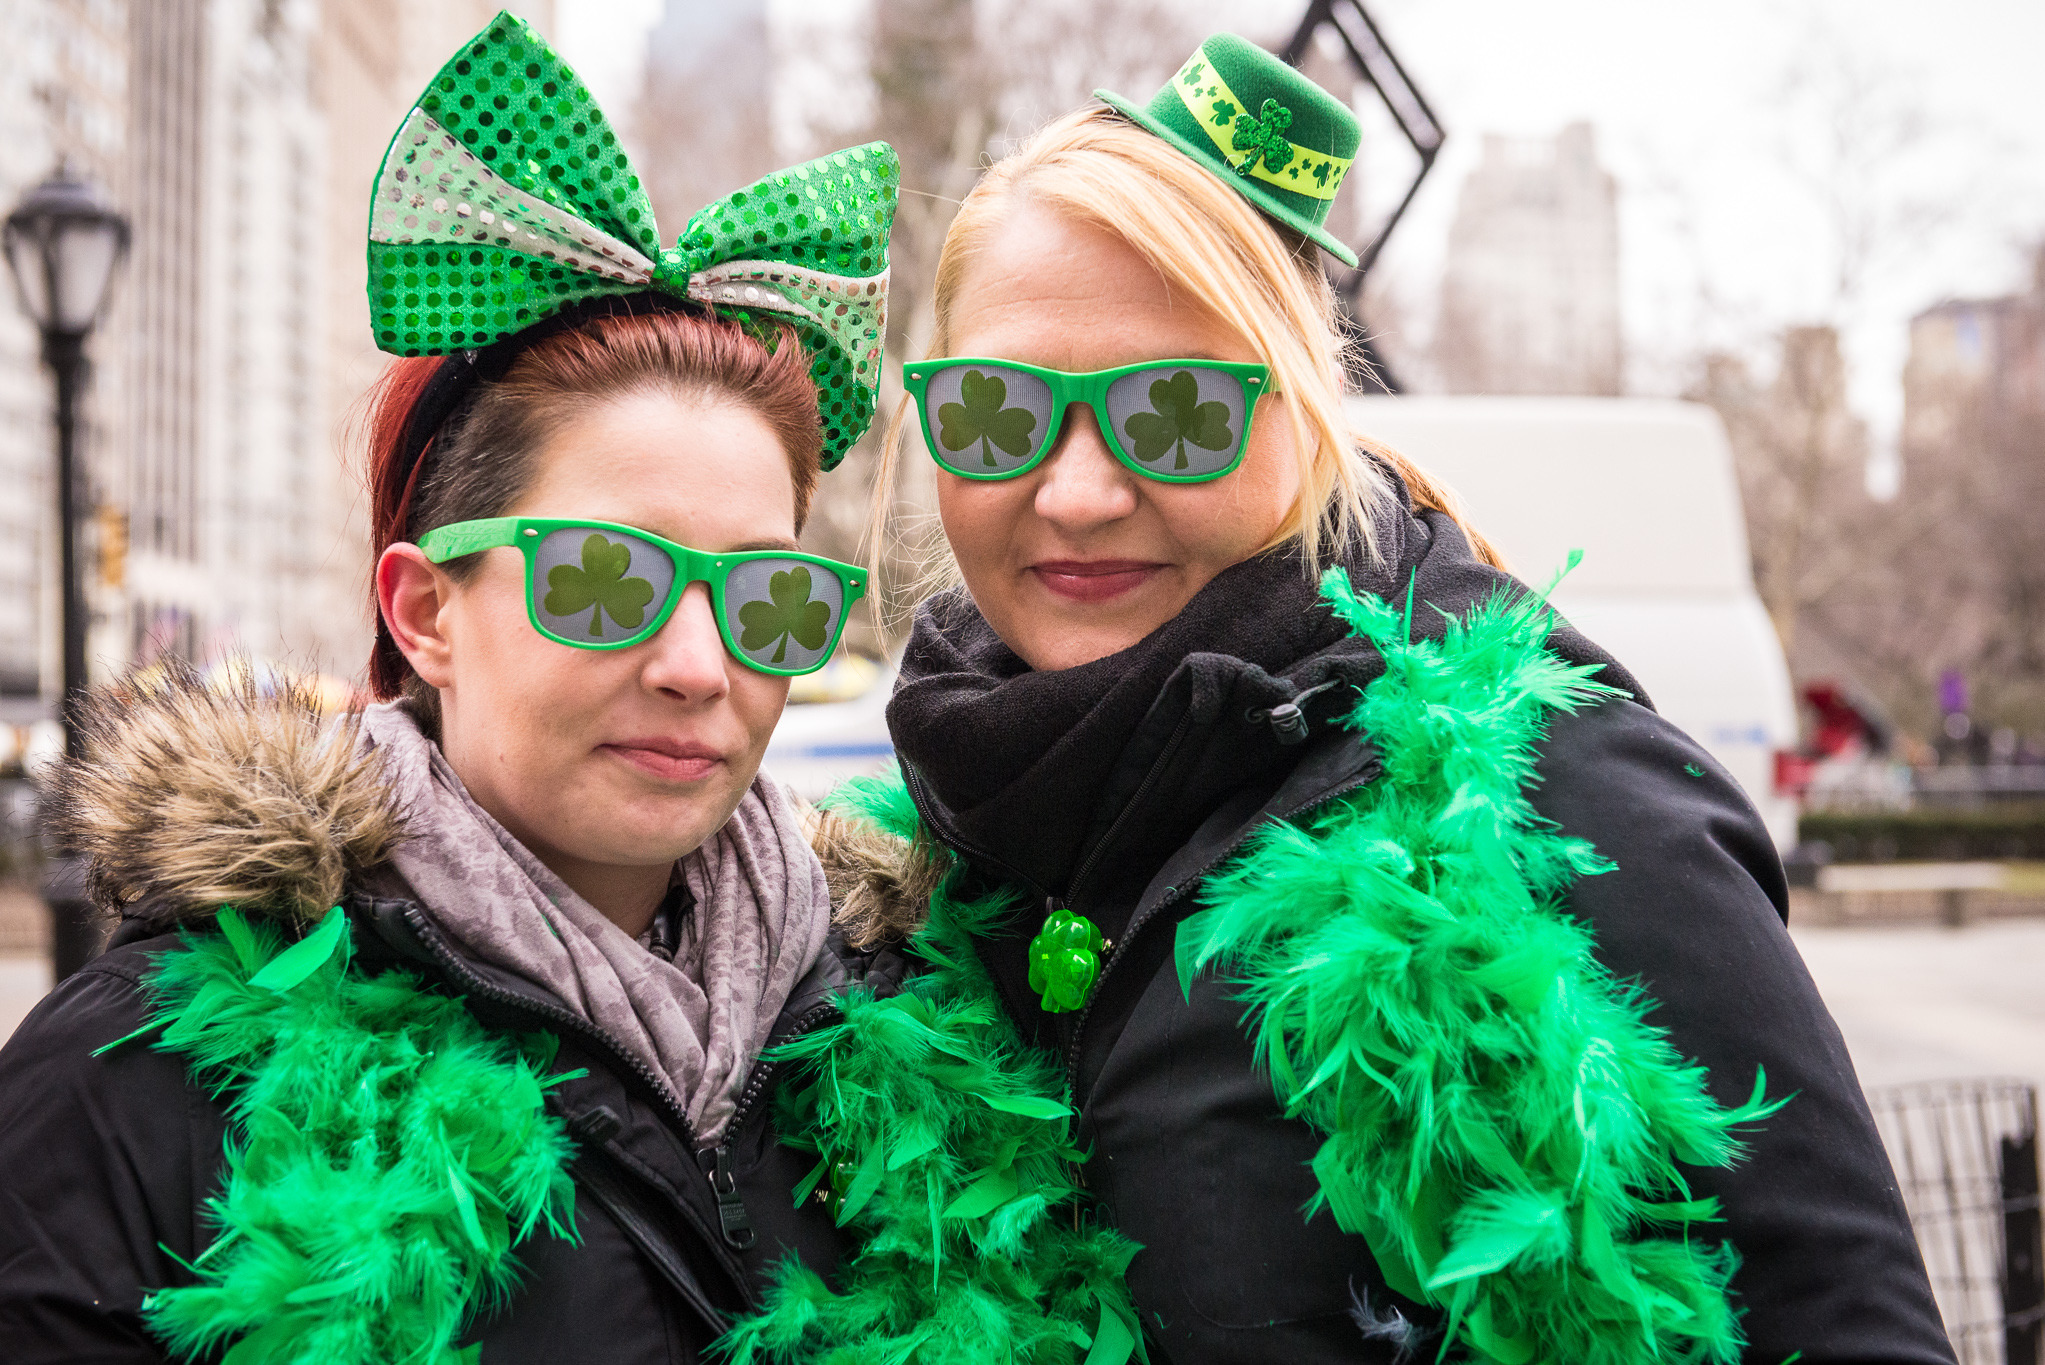 What to do for (early) St. Patrick's Day in Hoboken